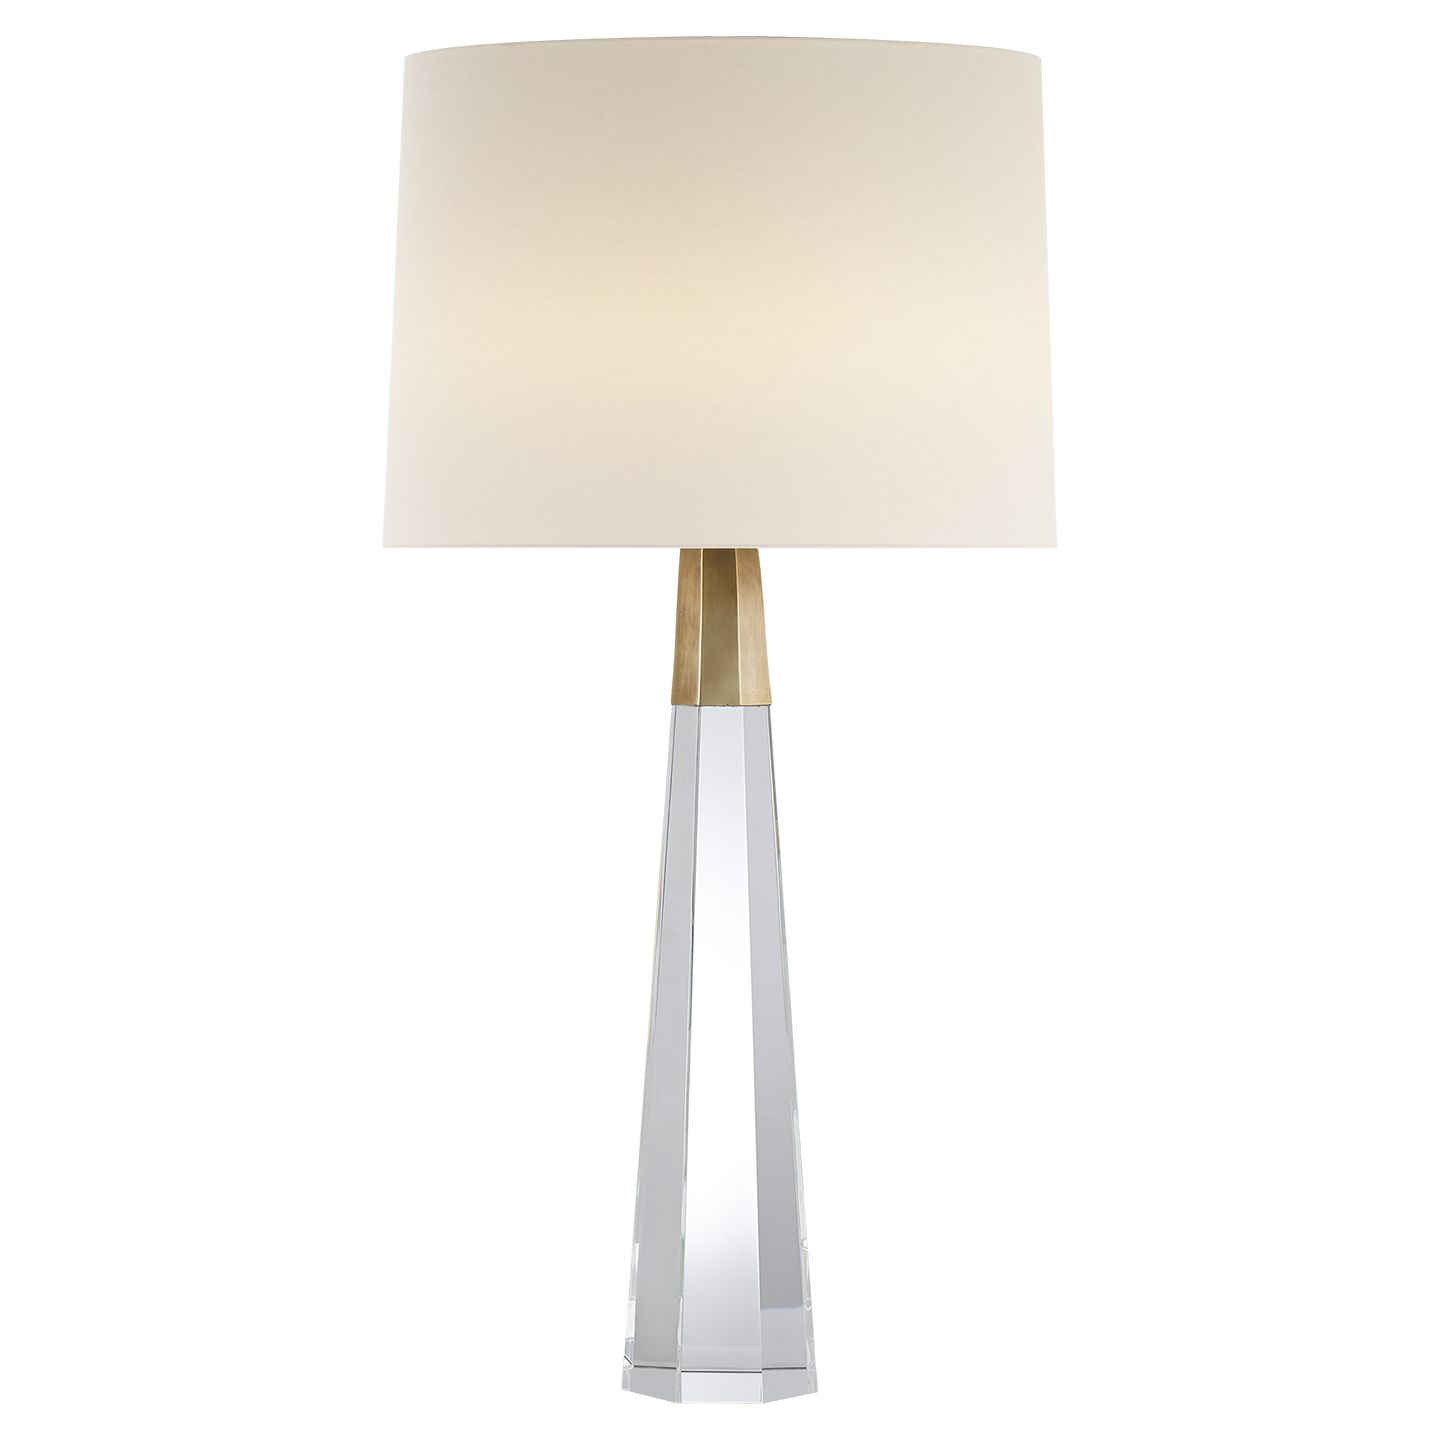 w category shop double clarkson aerin lamp lamps by sconce h